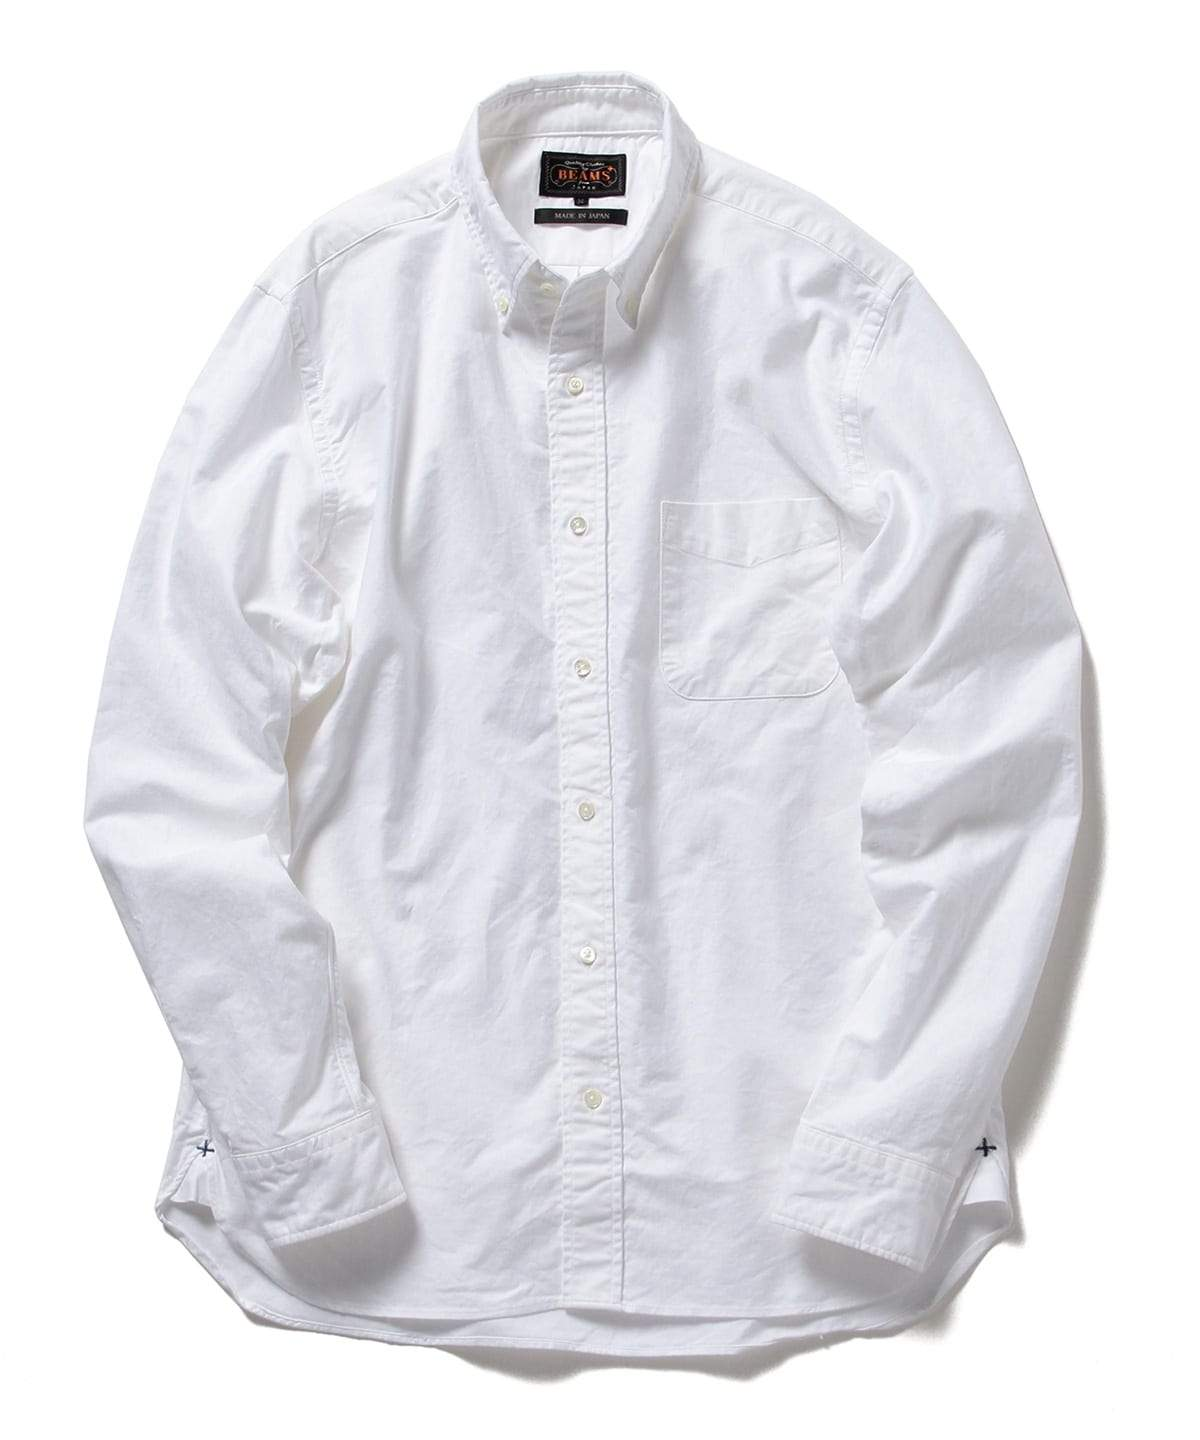 Beams + Basic Oxford Shirts